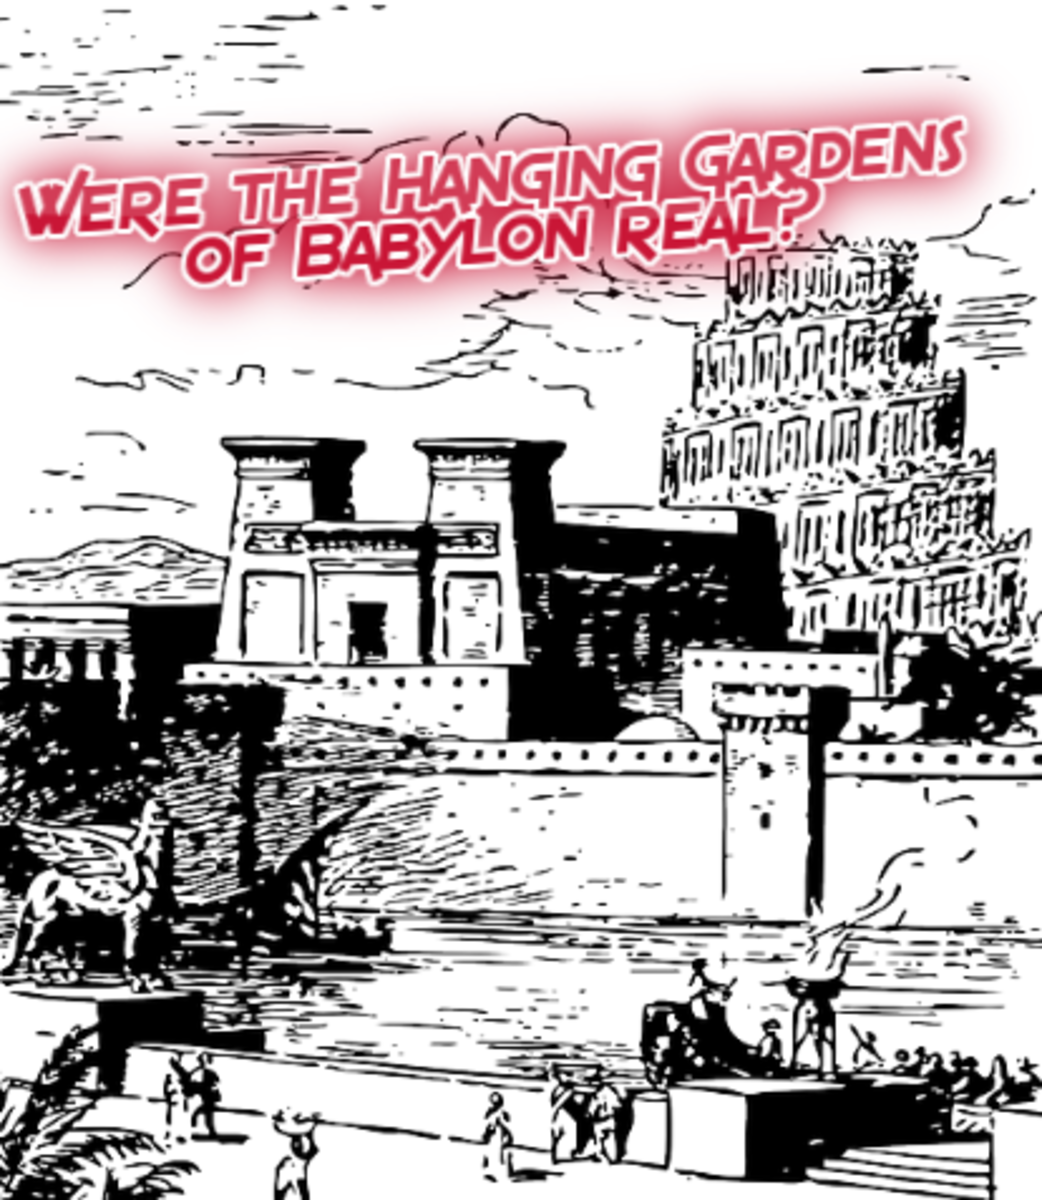 controversy-the-hanging-gardens-of-babylon-may-not-have-existed